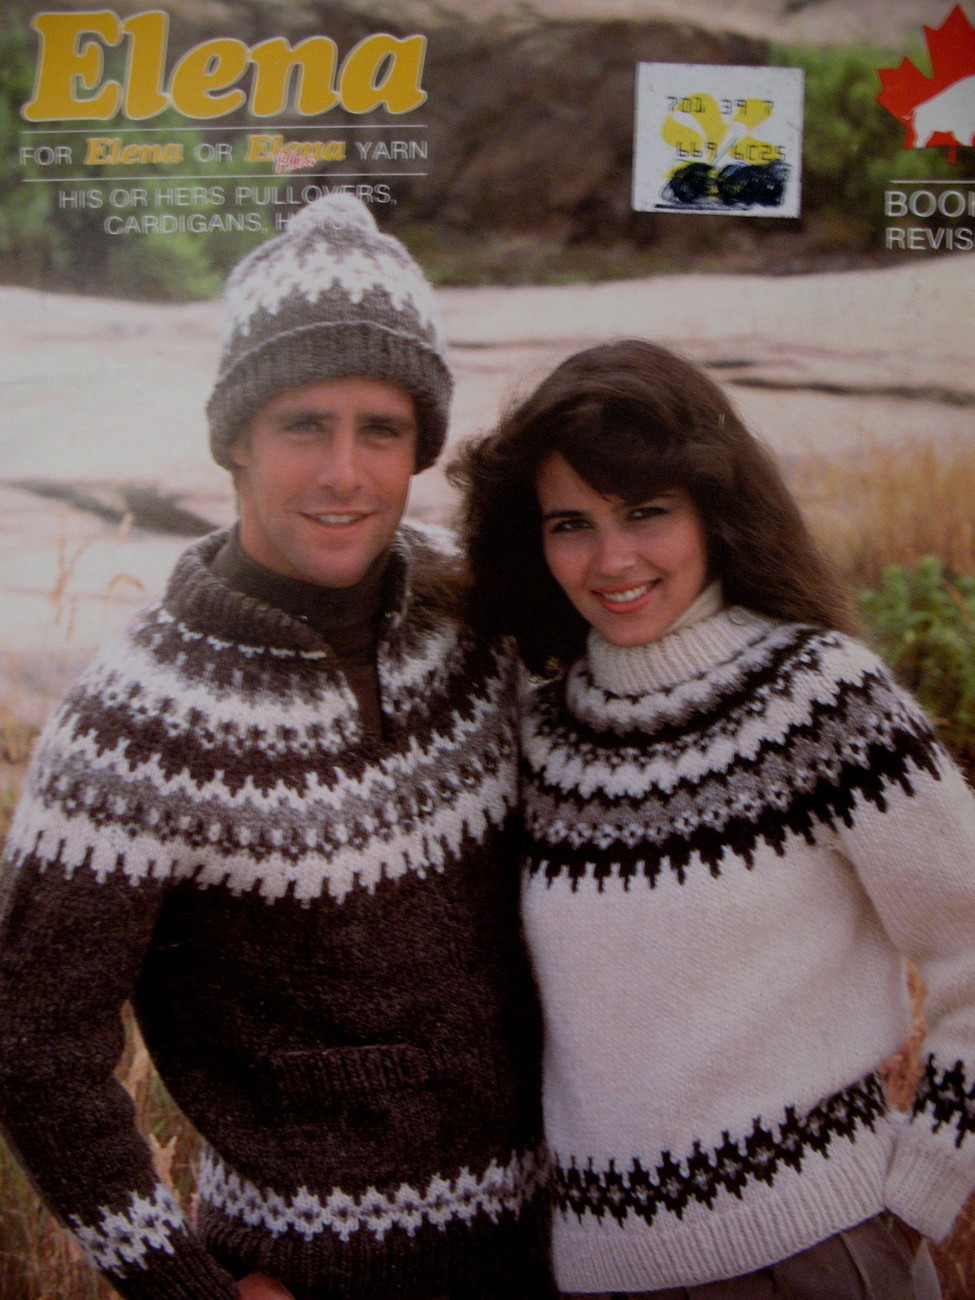 Elena Pullovers Cardigan Sweaters Hats Knitting Pattern